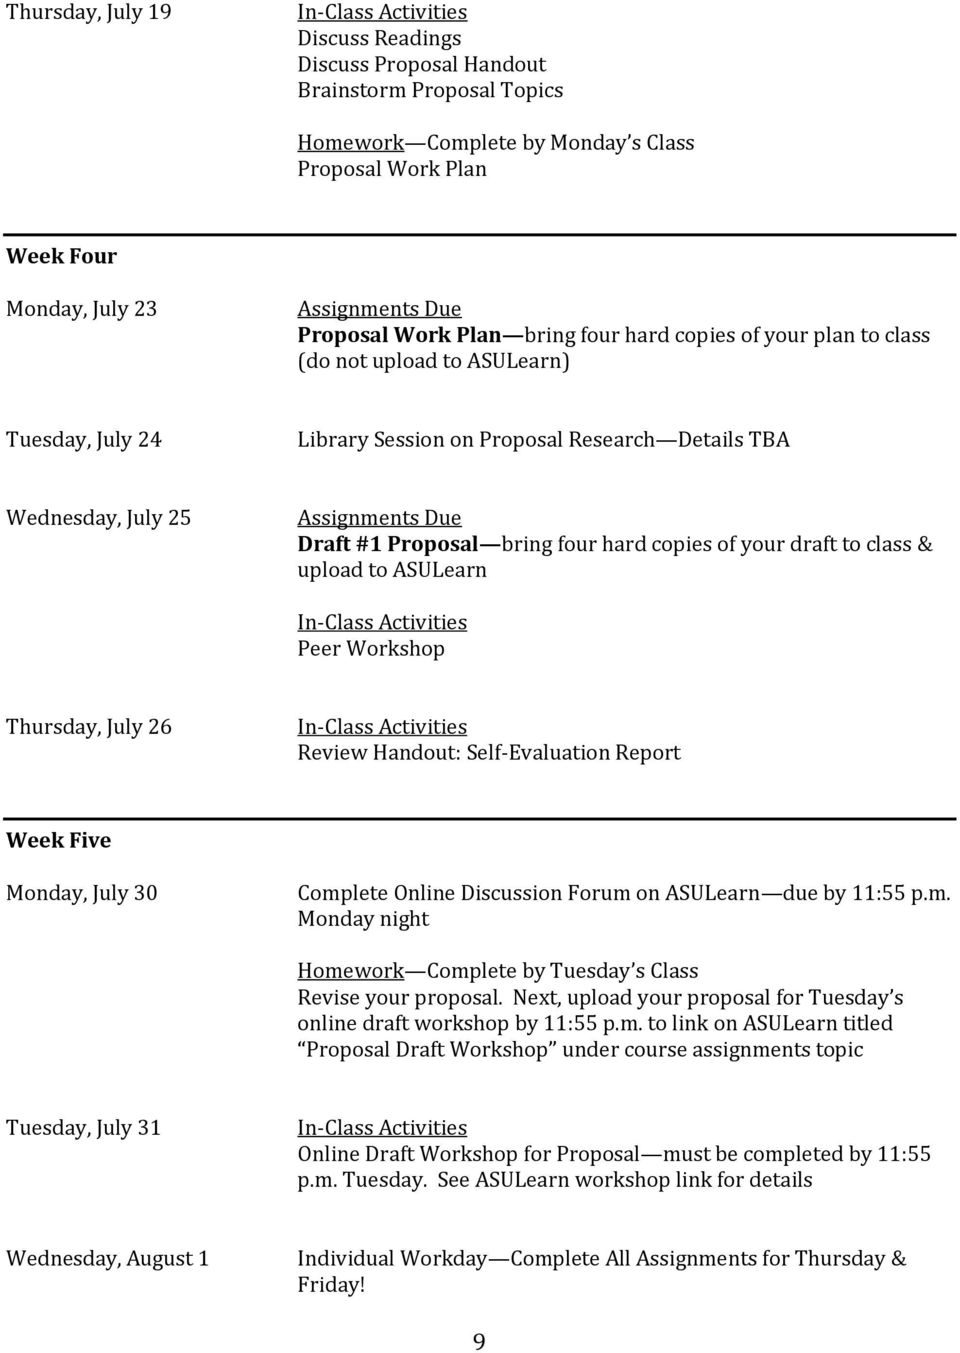 upload to ASULearn Peer Workshop Thursday, July 26 Review Handout: Self-Evaluation Report Week Five Monday, July 30 Complete Online Discussion Forum on ASULearn due by 11:55 p.m. Monday night Homework Complete by Tuesday s Class Revise your proposal.